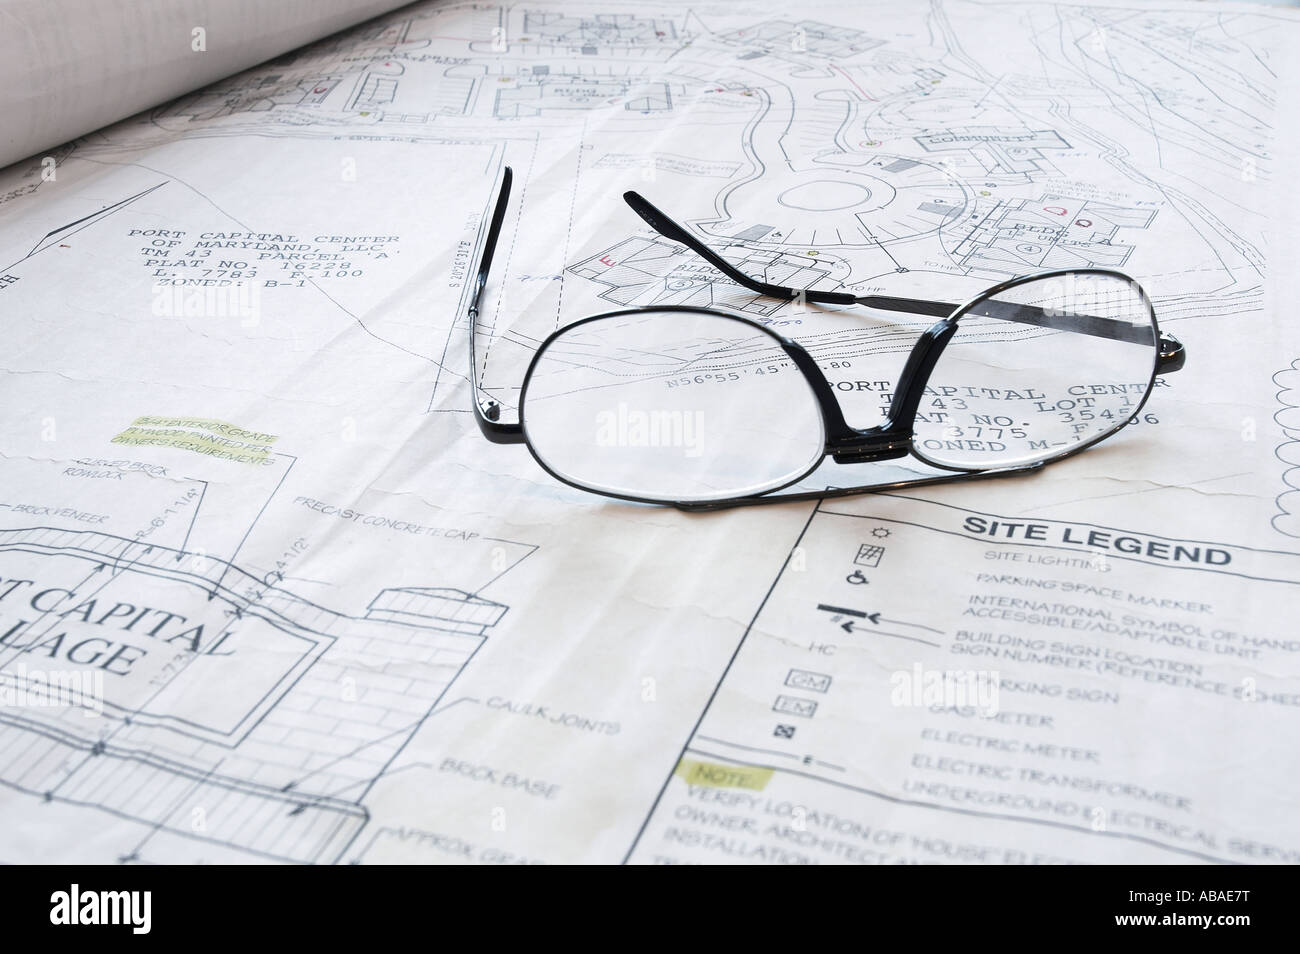 Architectural blueprint drawings of building on table with architectural blueprint drawings of building on table with architects eye glasses studio still life usa malvernweather Images